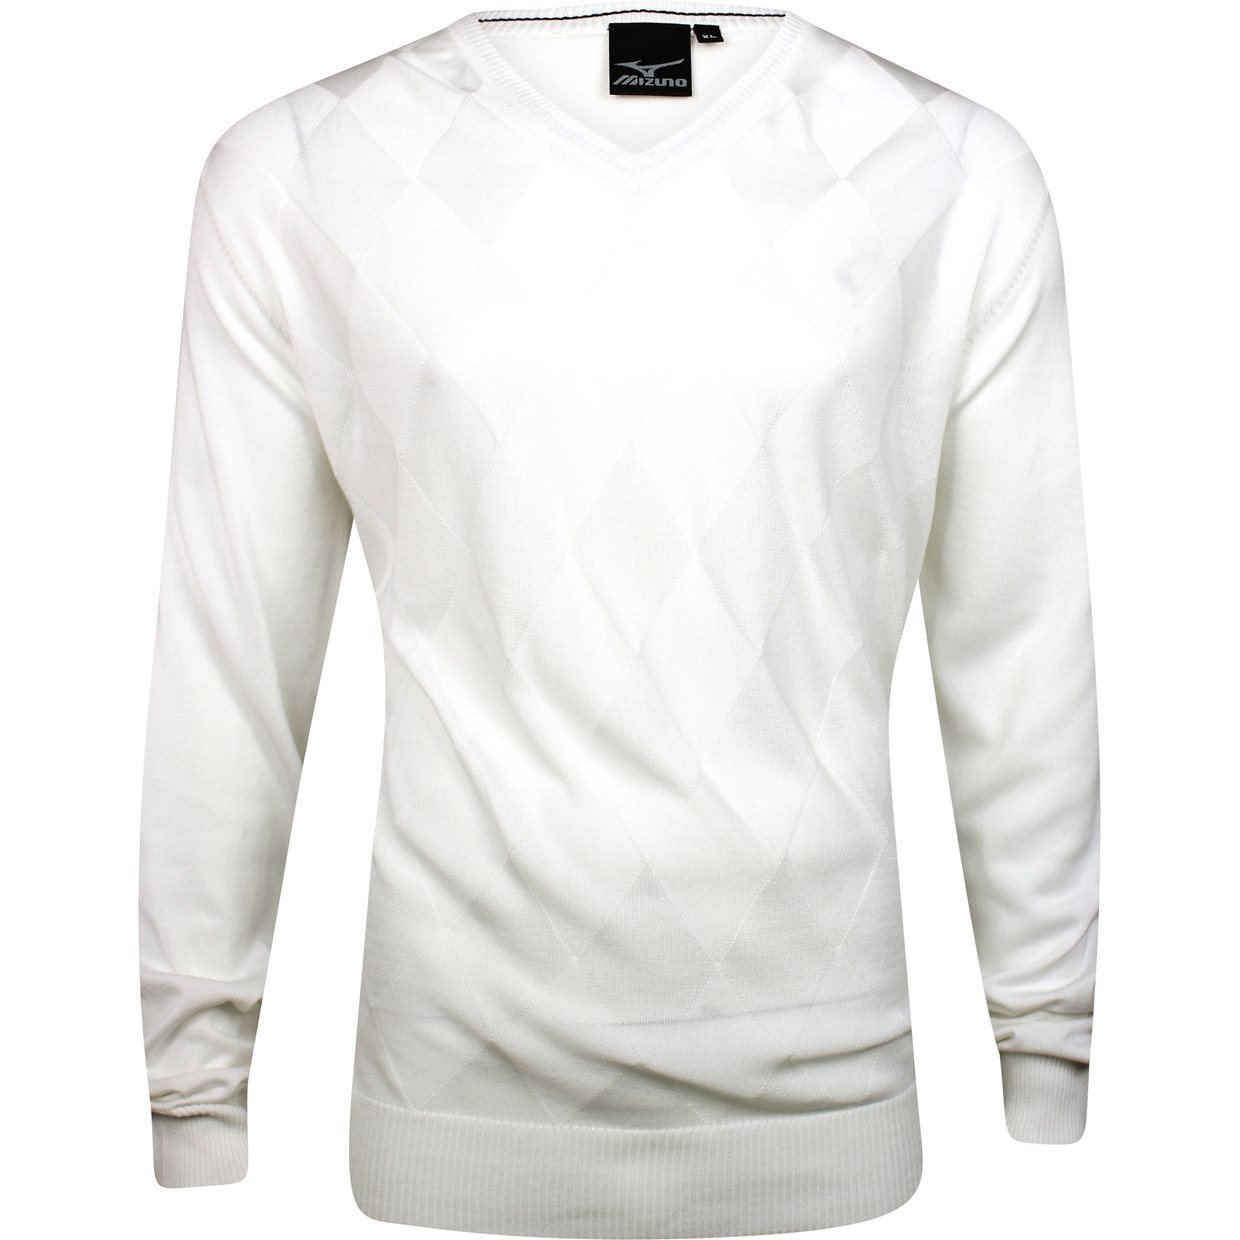 Mizuno Modal/Cotton Sweater Apparel at GlobalGolf.com